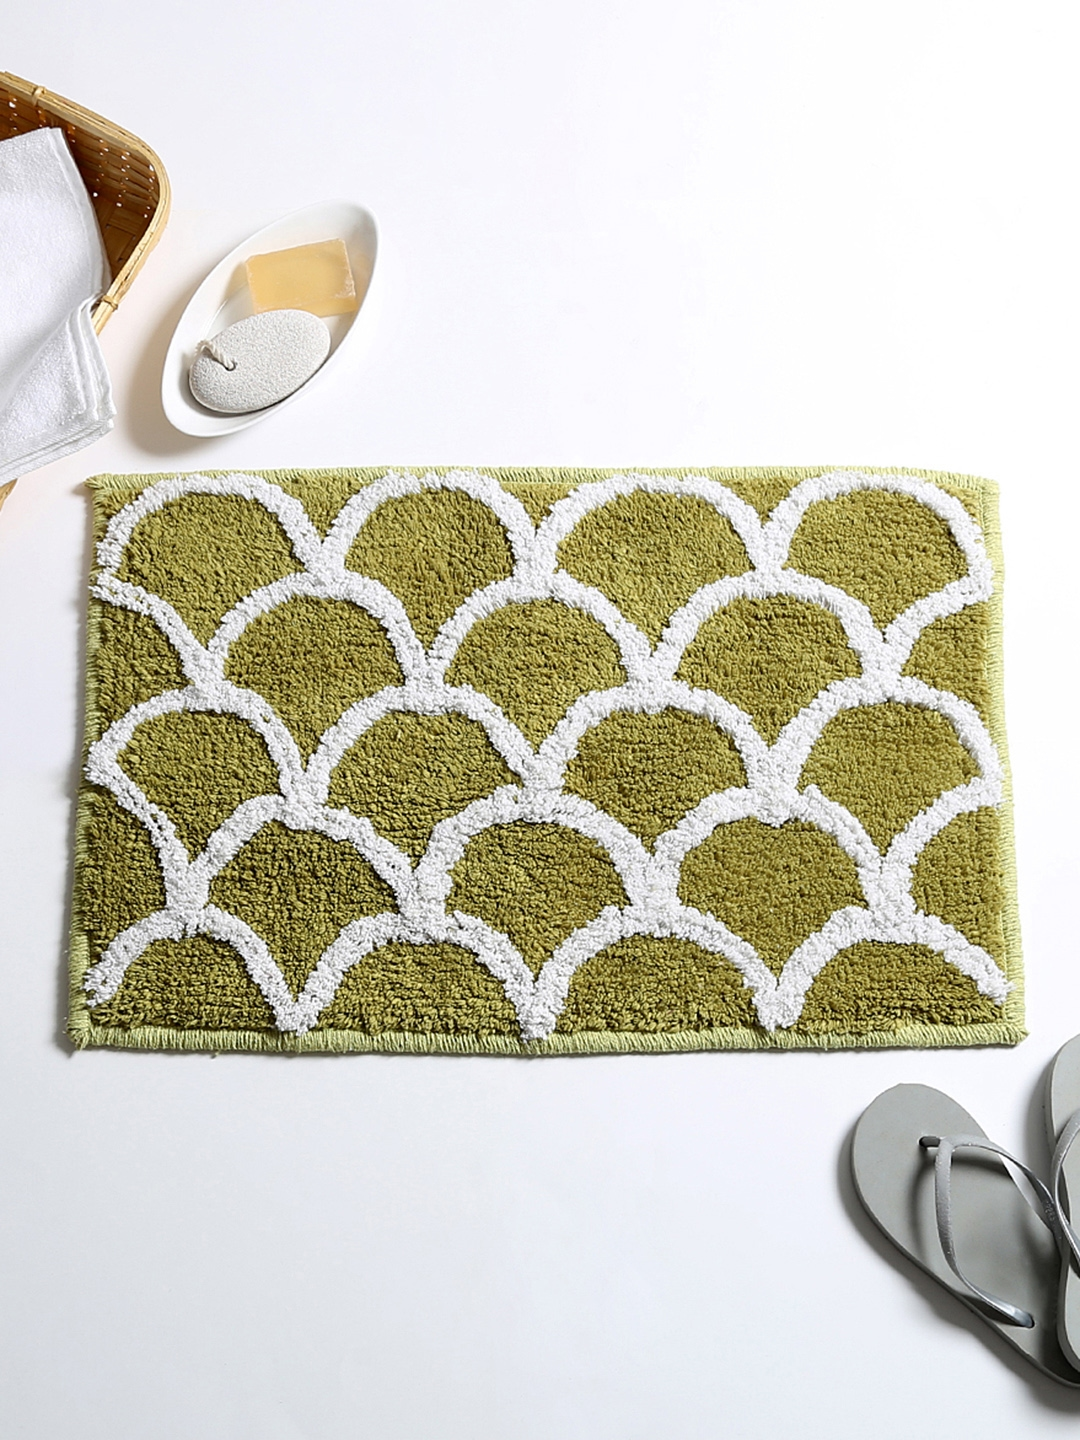 House This Green Patterned Cotton Rectangular Bath Rug